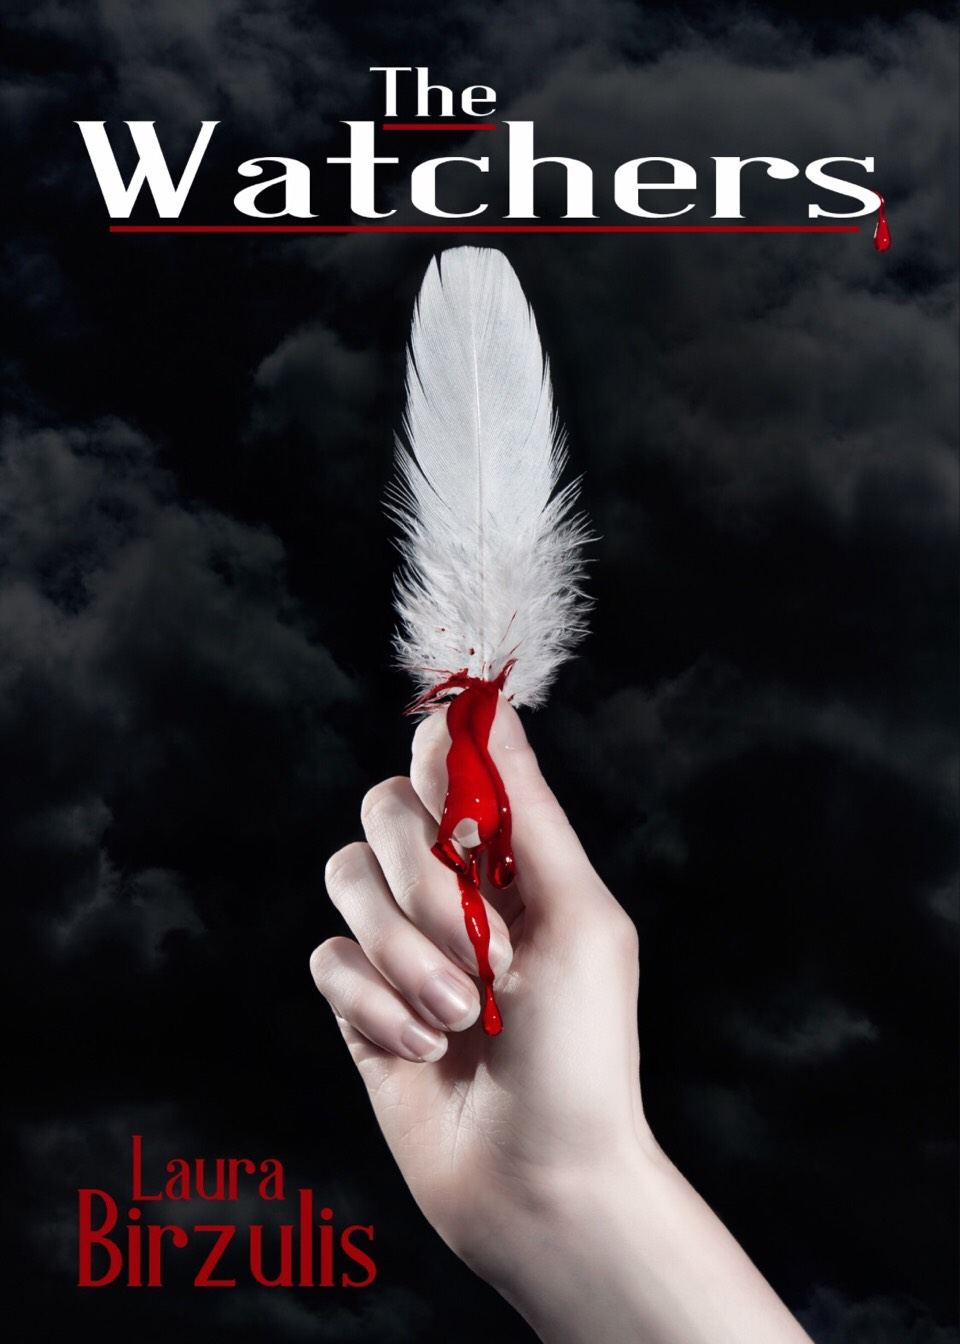 Love supernatural suspense? Read and review 'The Watchers' by me Laura Birzulis in a chance to win a free signed copy!